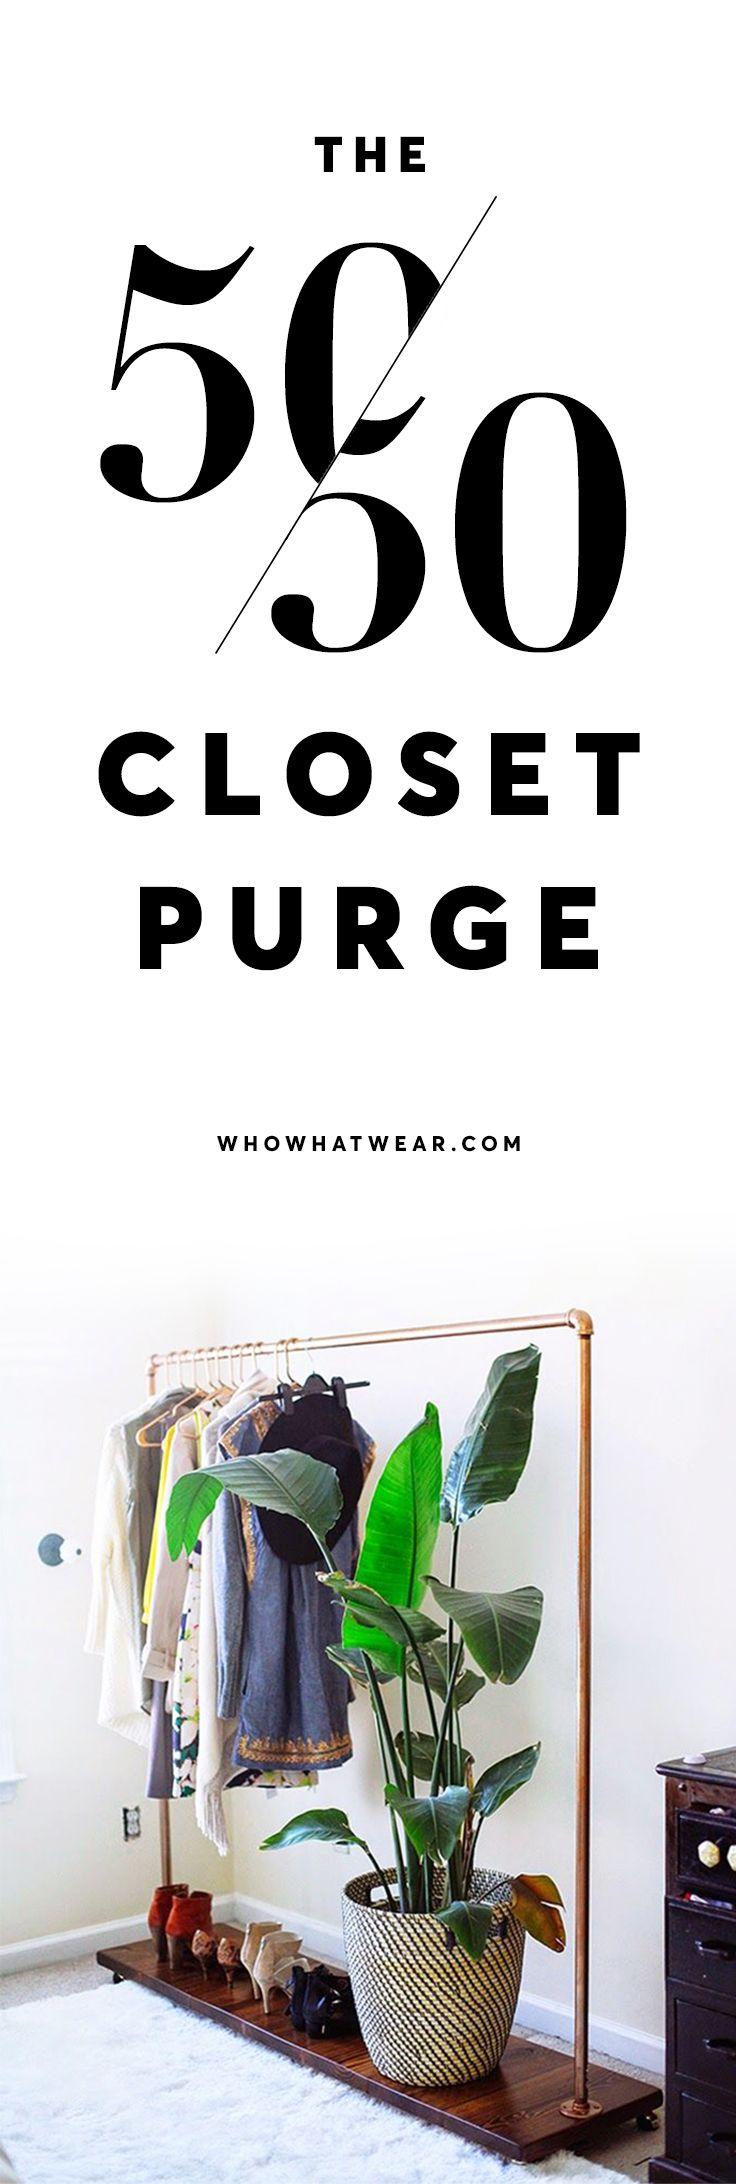 best how to organize your closet images on pinterest